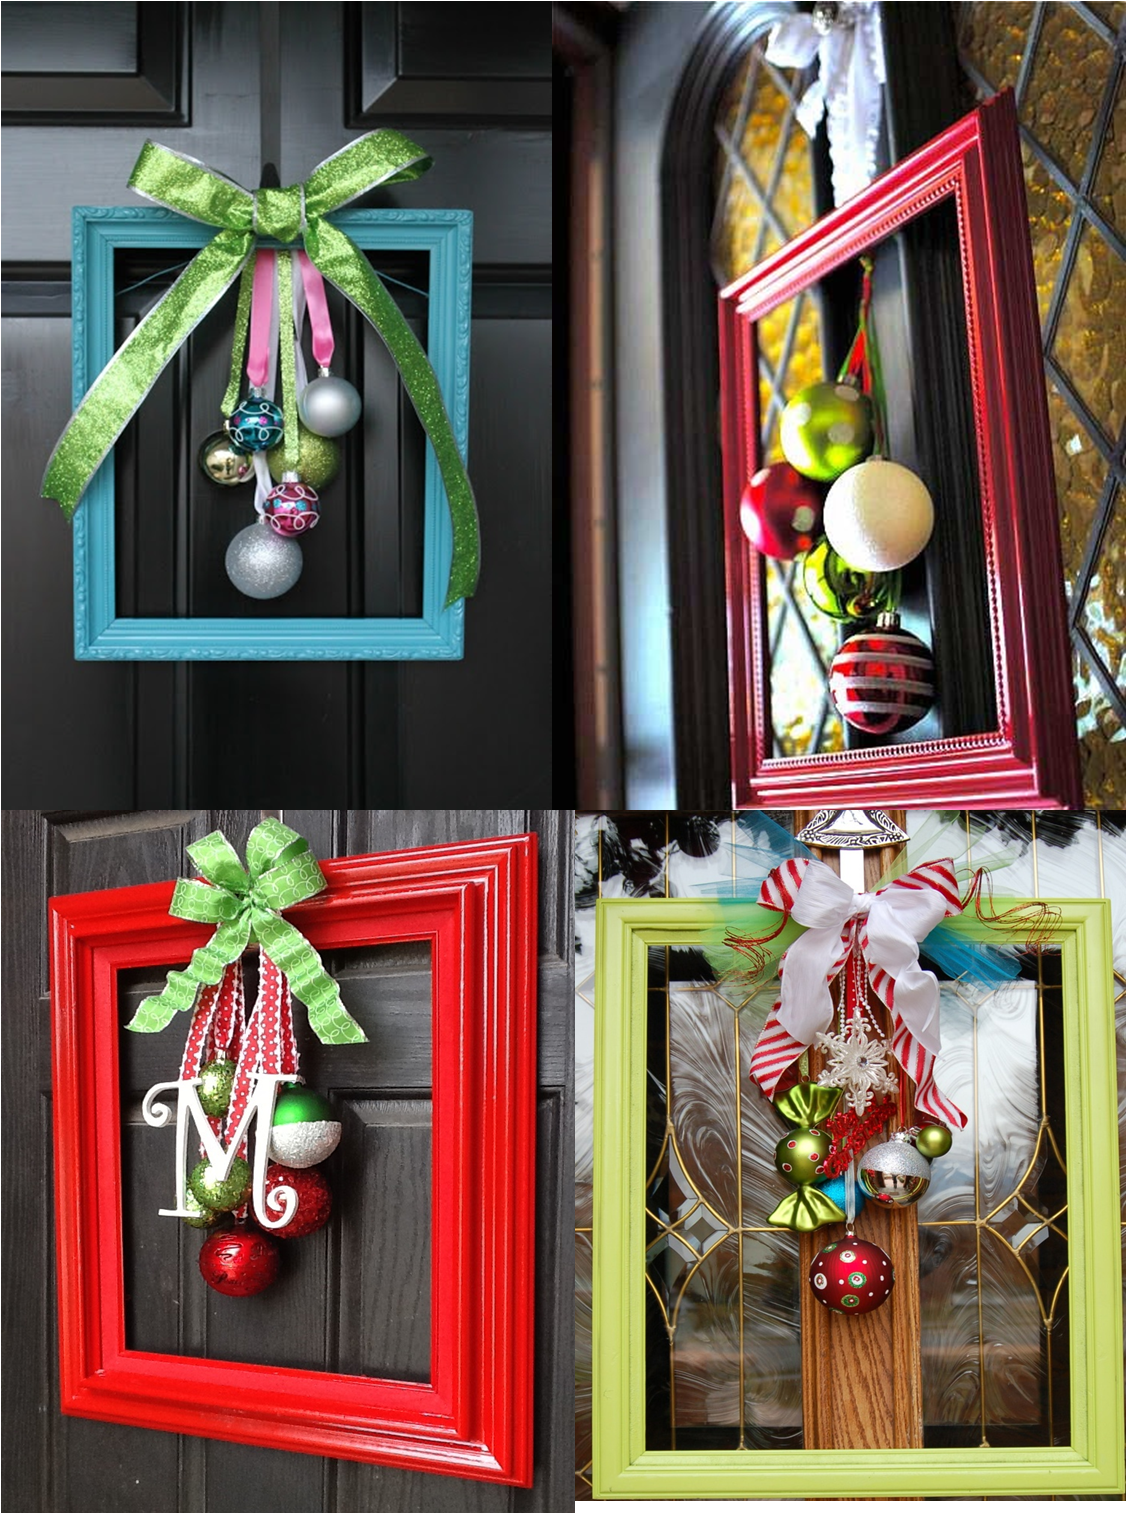 Elegant And Unusual Door Decorations Made From Picture Frames, Ribbons And  Baubles. Cute On Bedroom Doors.